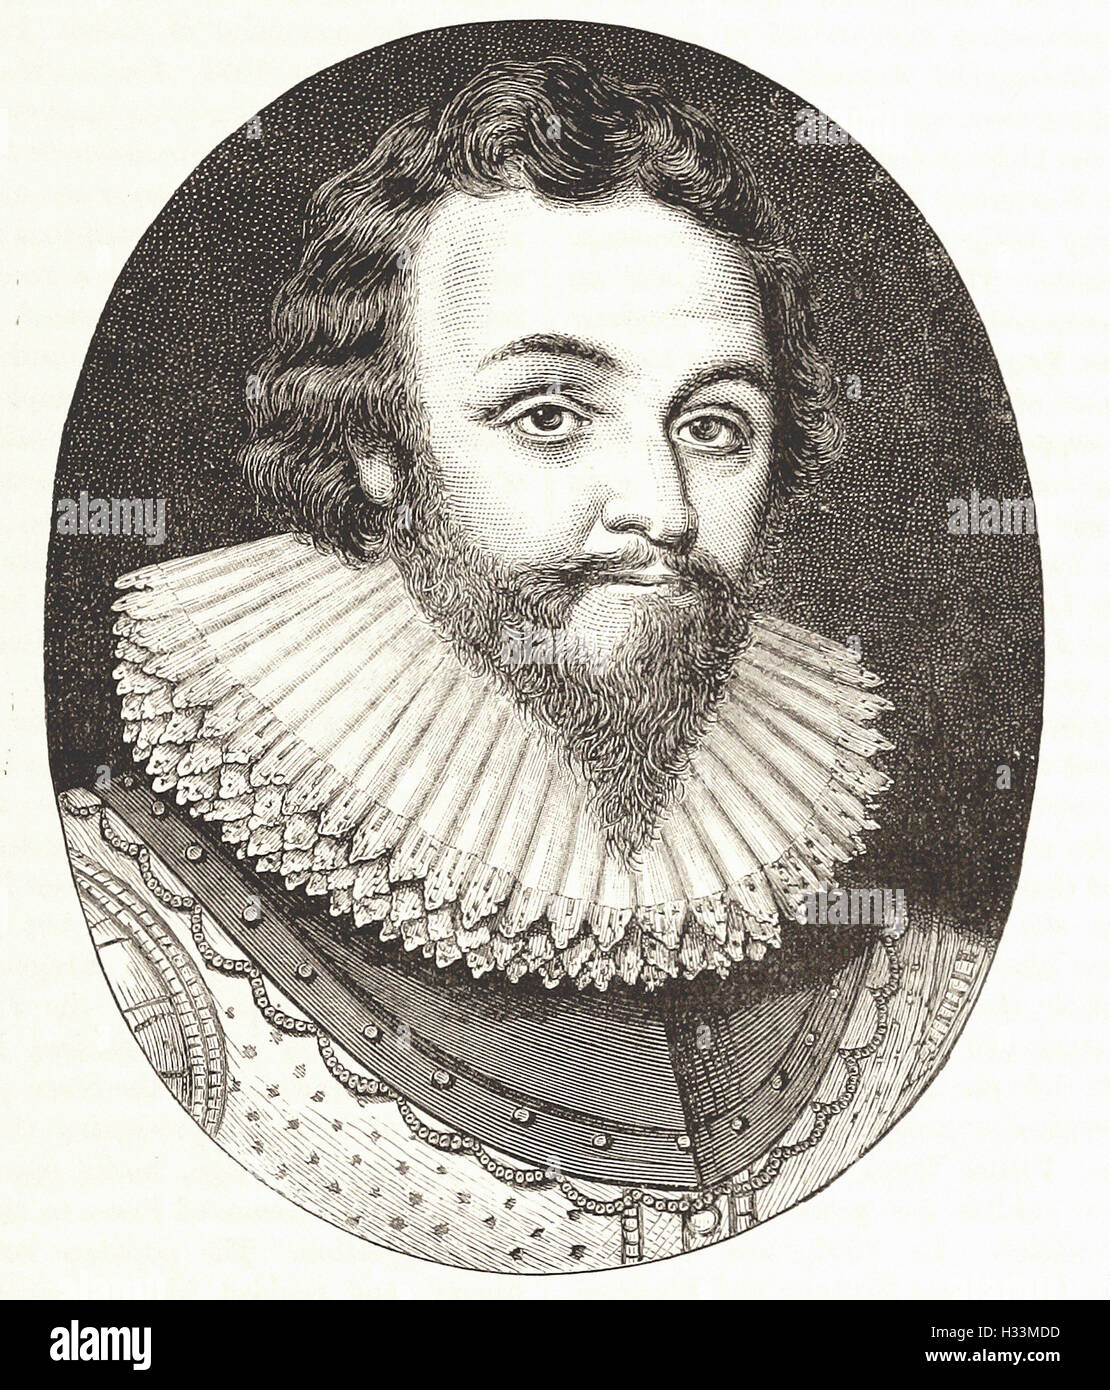 SIR FRANCIS DRAKE - from 'Cassell's Illustrated Universal History' - 1882 - Stock Image